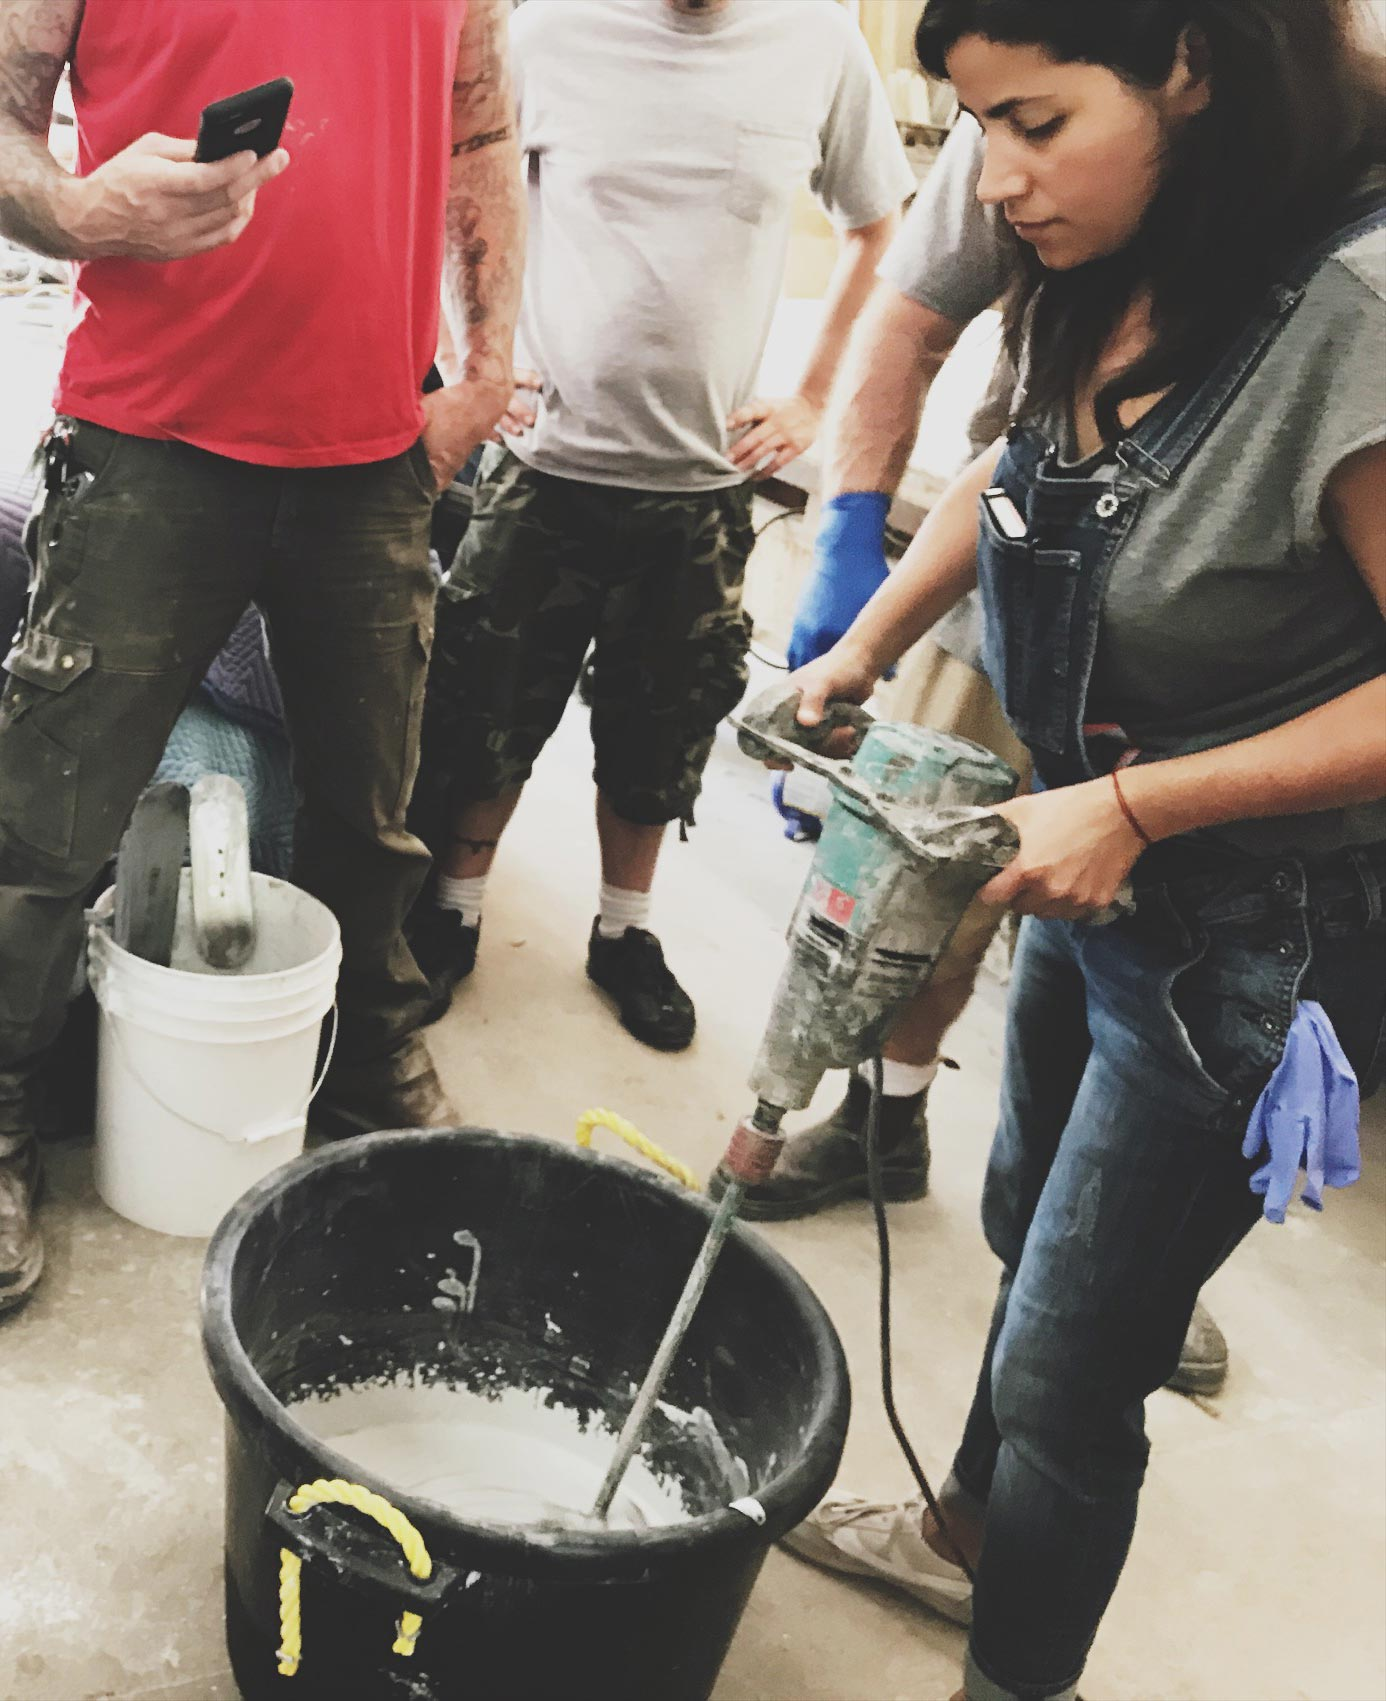 Concrete workshop attendee learning how to properly mix GFRC for concrete sinks and countertops